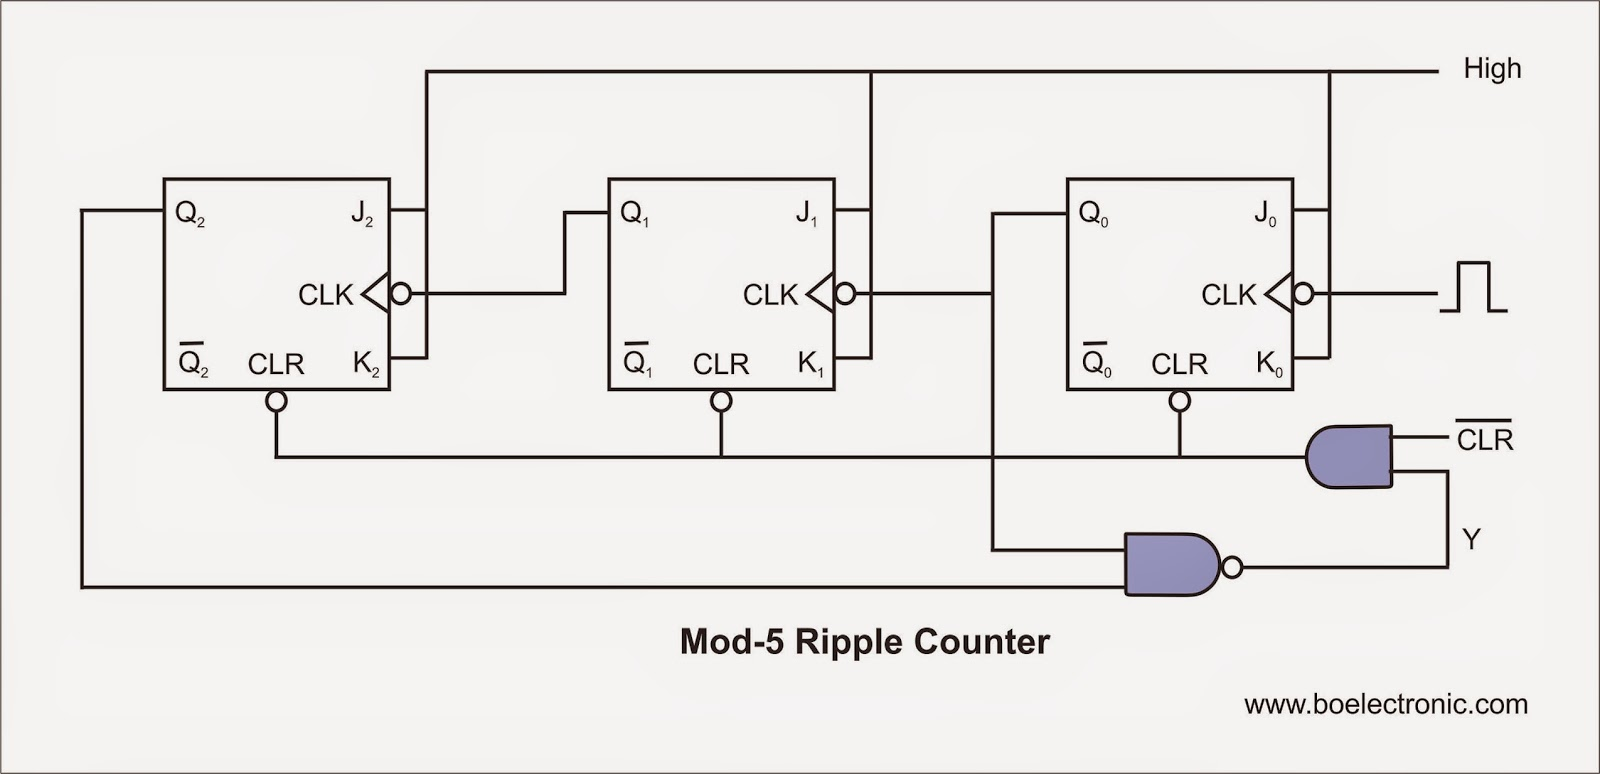 medium resolution of mod 6 counter logic diagram